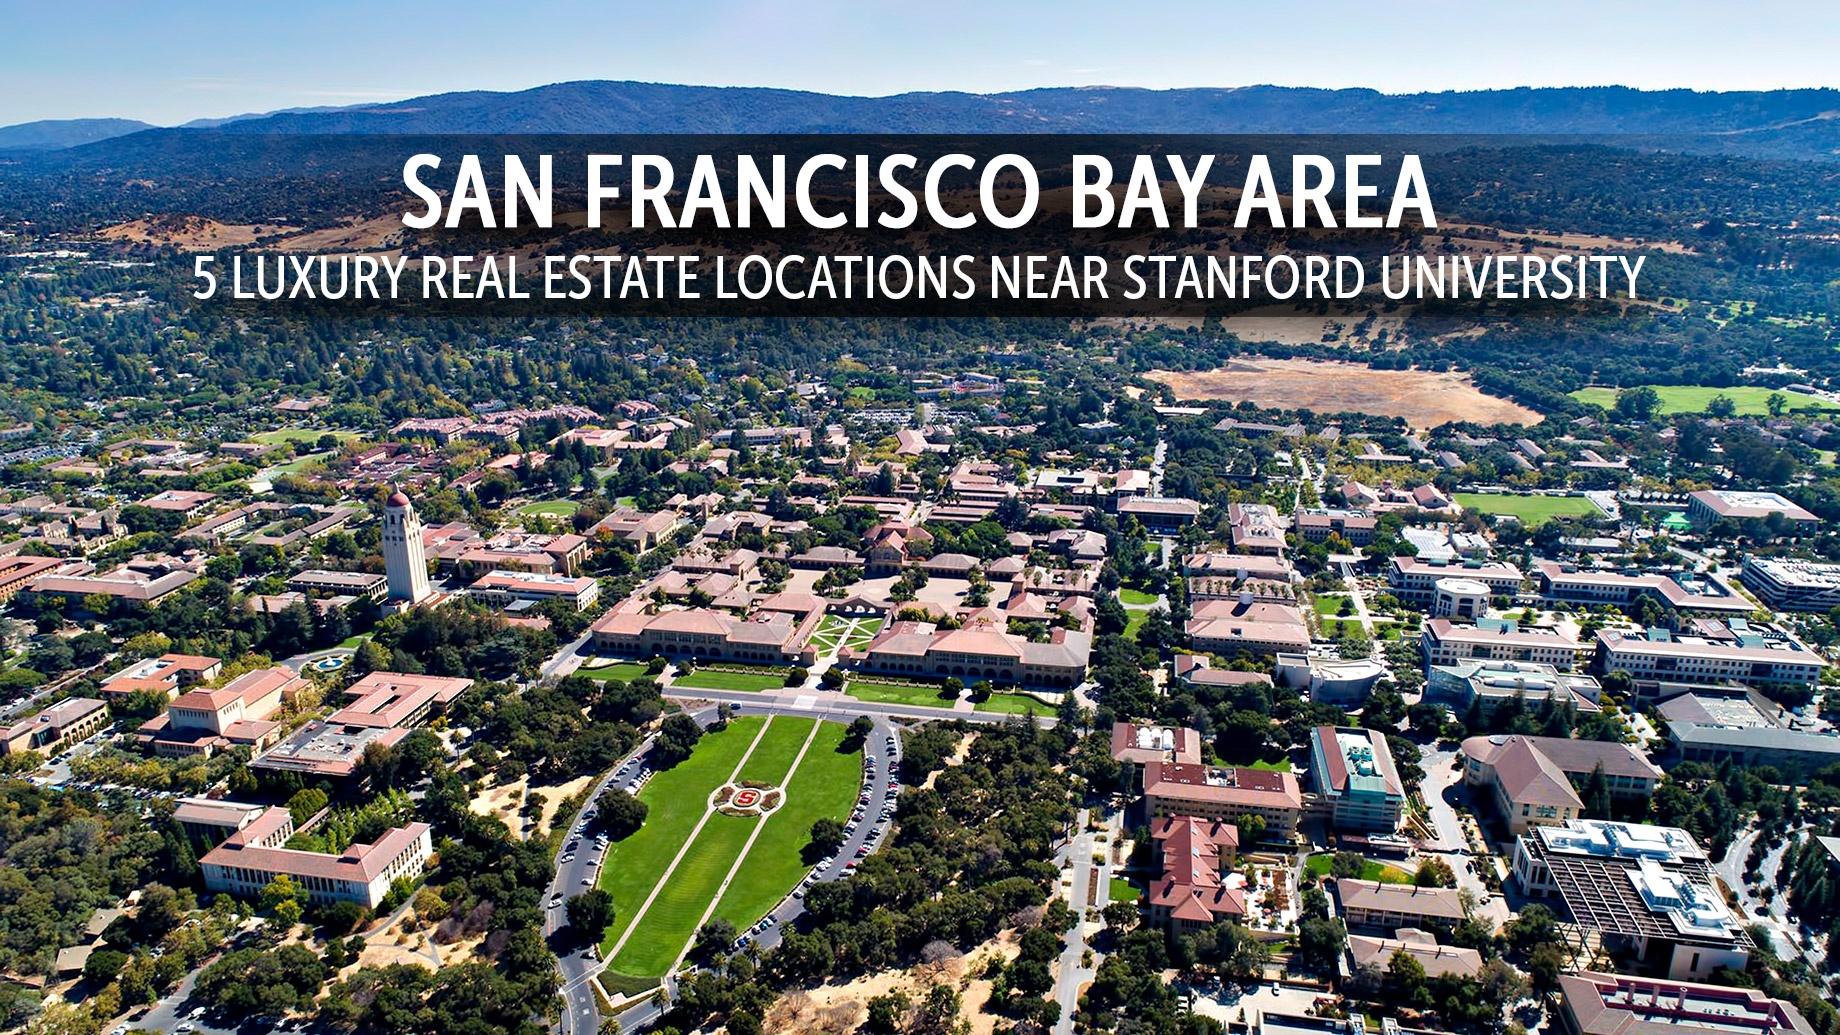 San Francisco Bay Area - 5 Luxury Real Estate Locations Near Stanford University